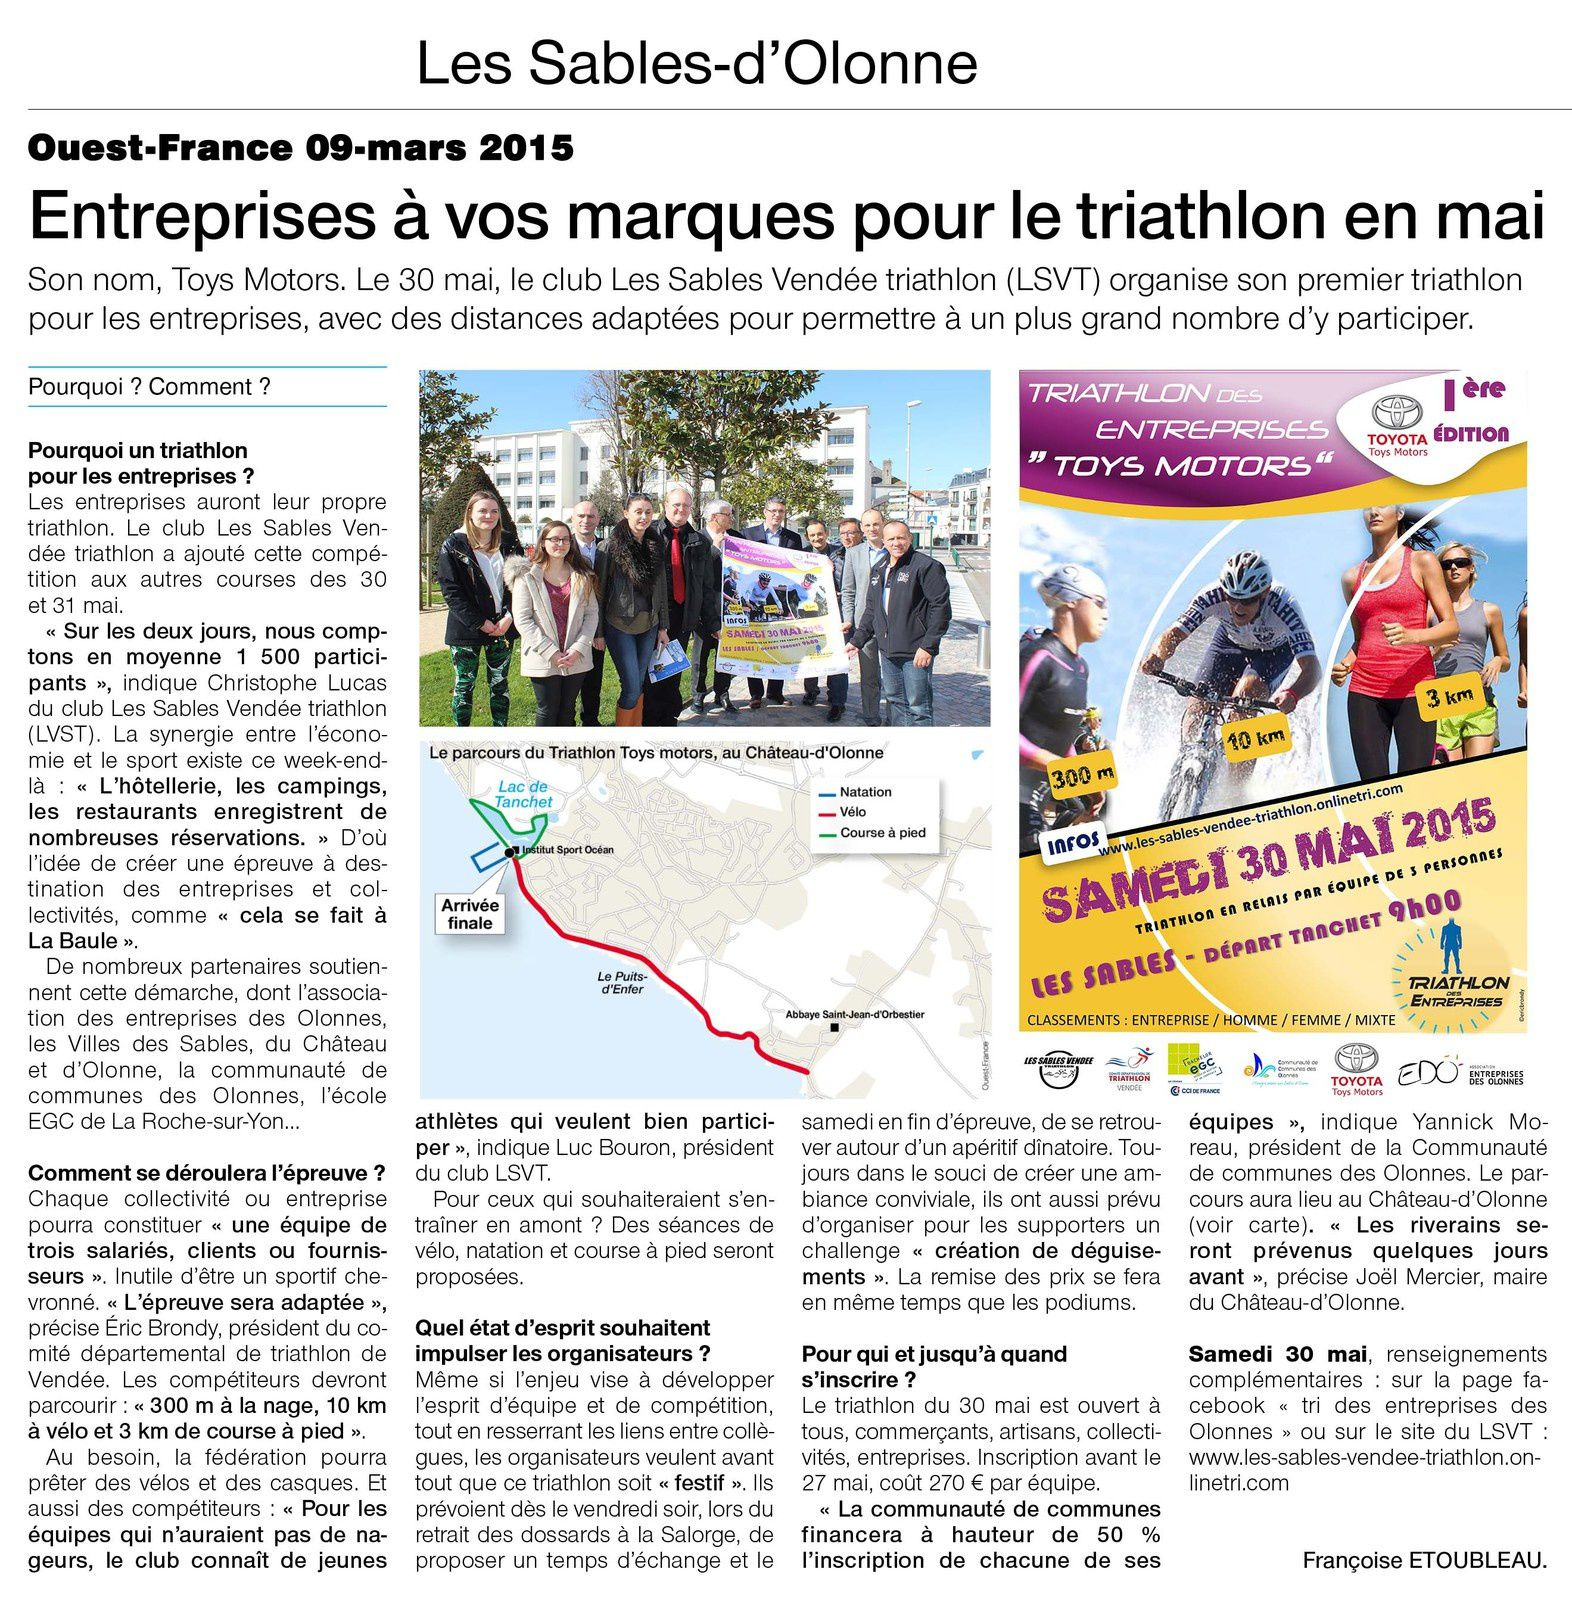 OUEST-FRANCE 09 MARS 2015